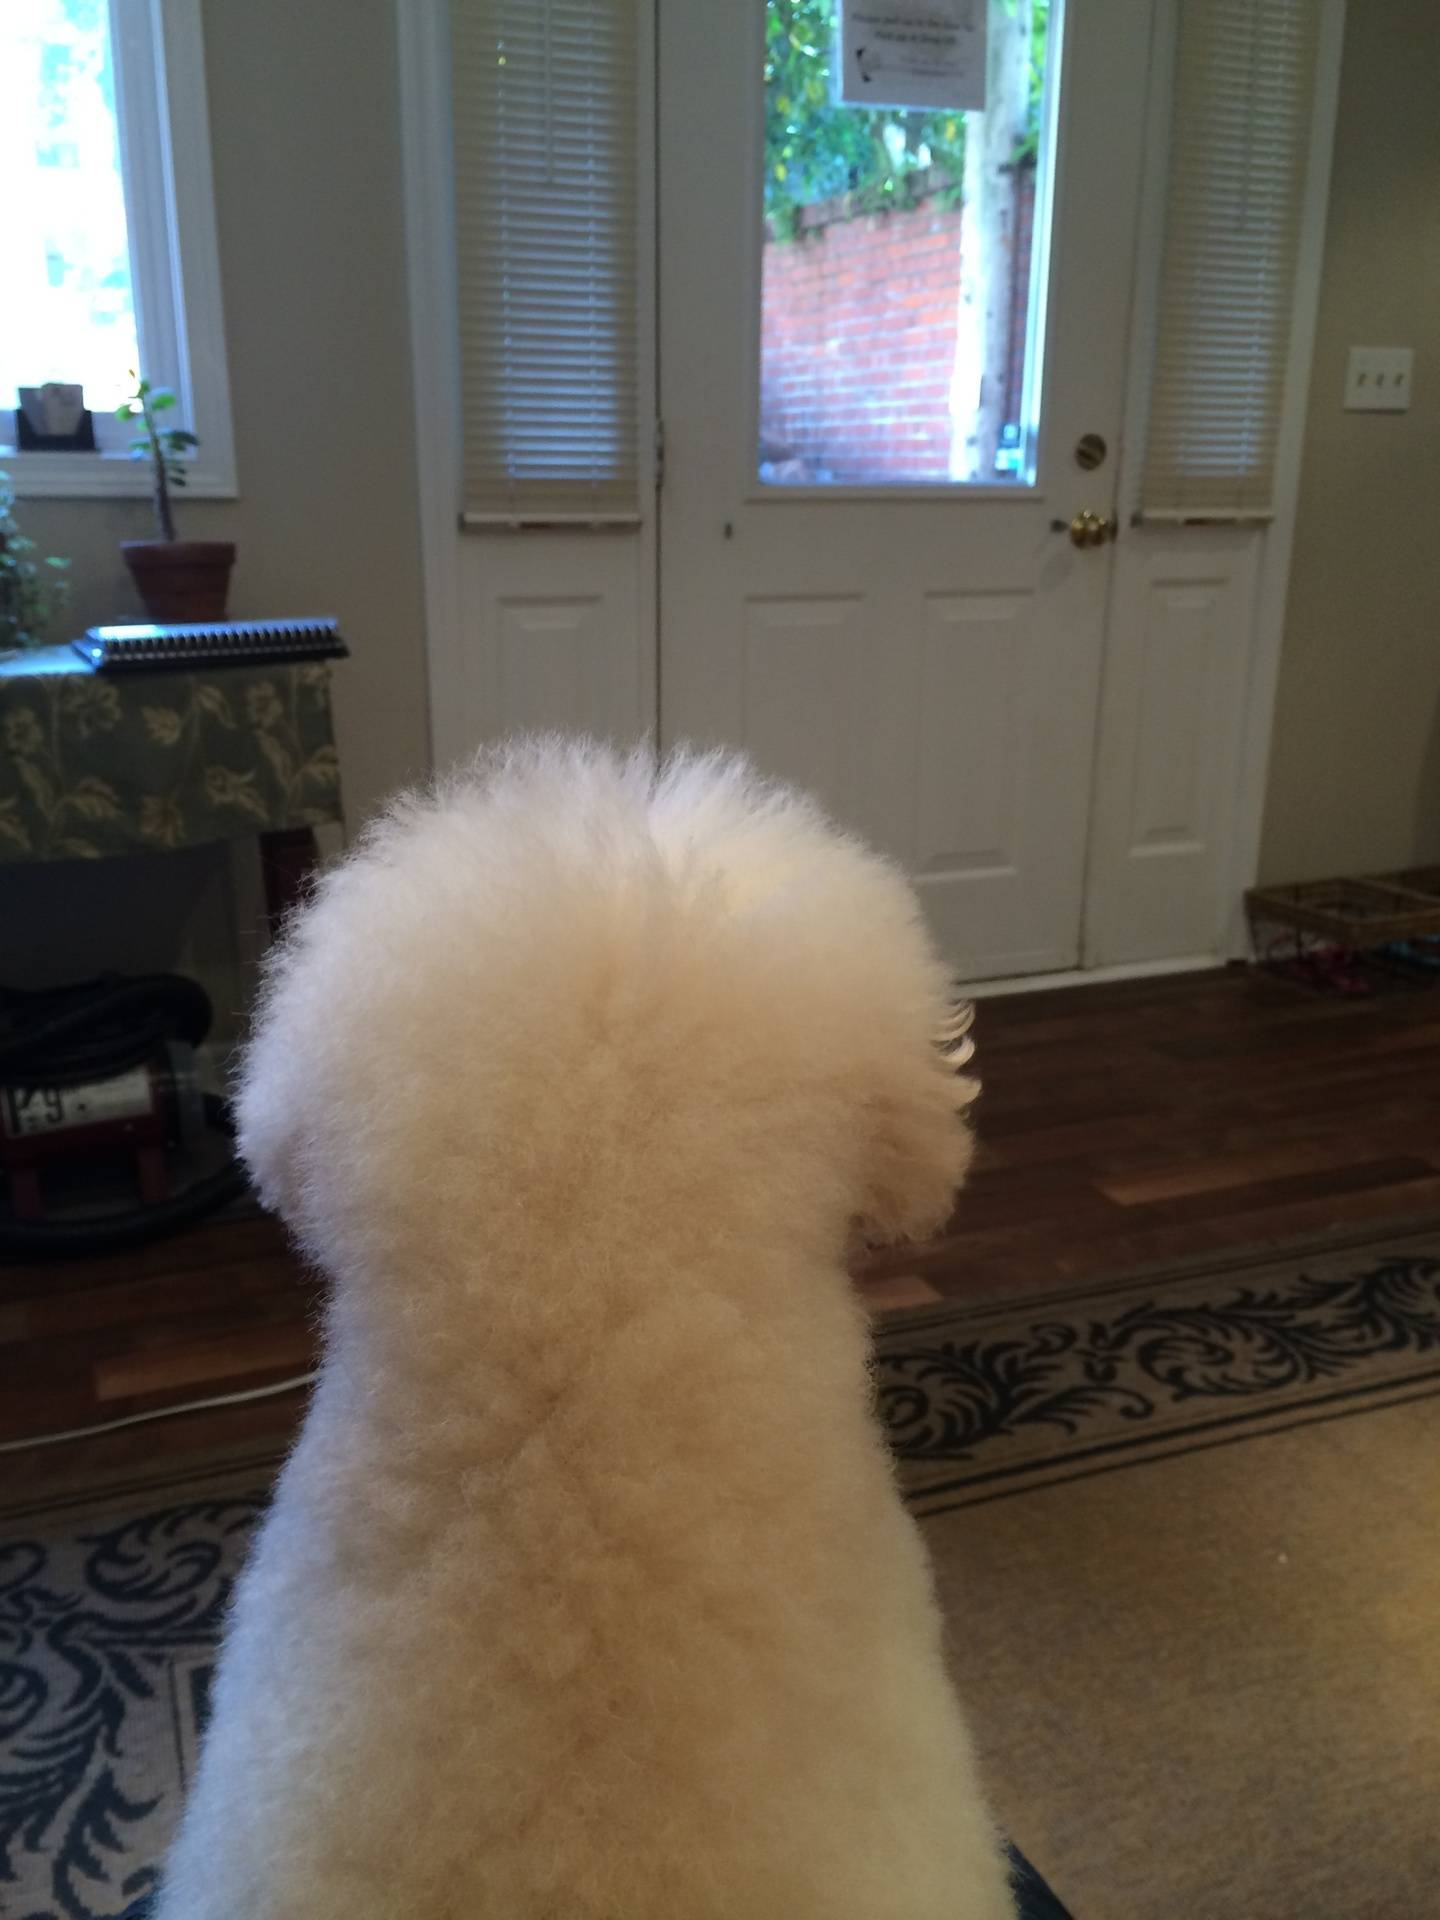 Toy Poodle waiting for mom